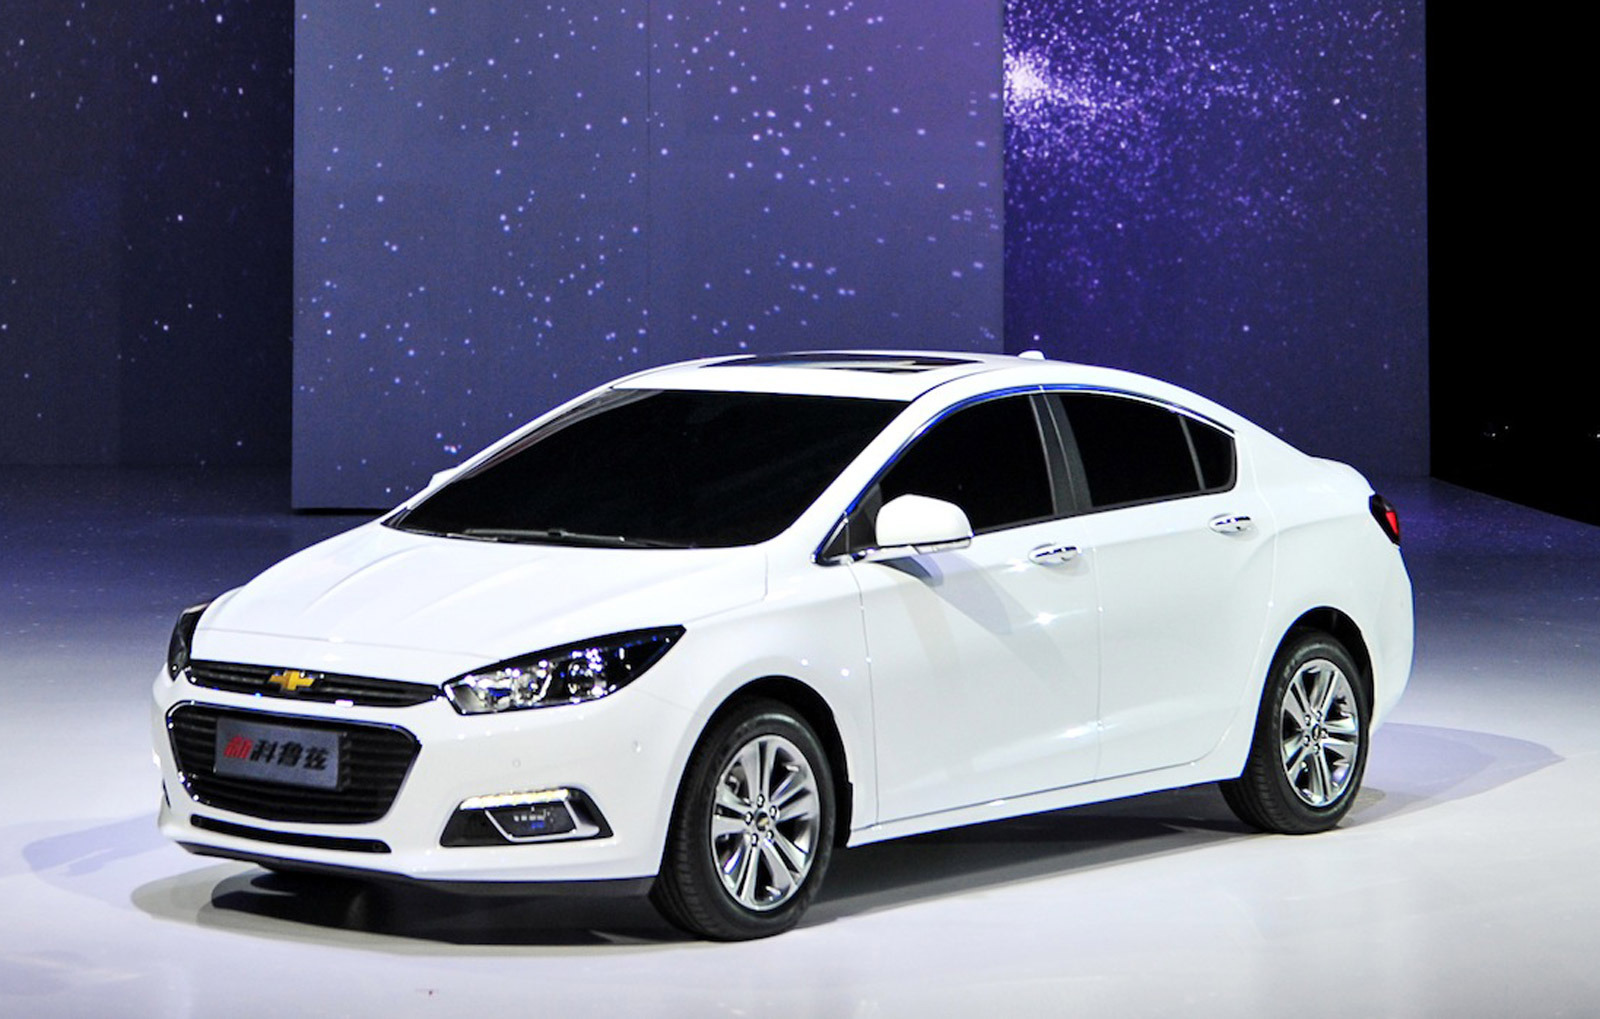 2016 chevrolet cruze sedan unveiled at beijing auto show. Black Bedroom Furniture Sets. Home Design Ideas